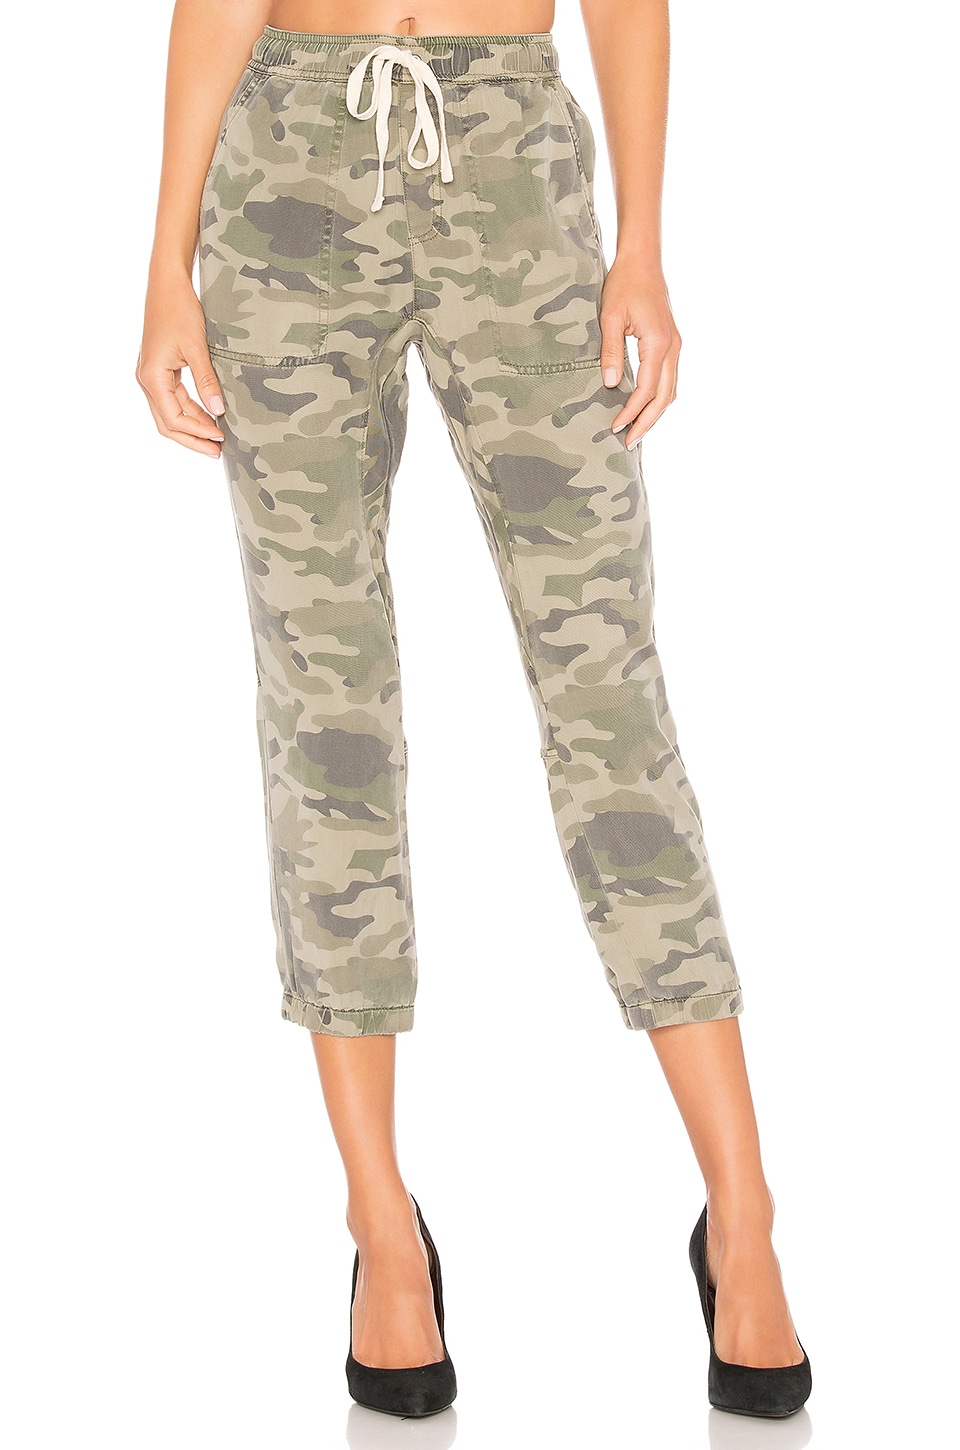 Pam & Gela Pants PAM & GELA LACE UP PANT IN ARMY.